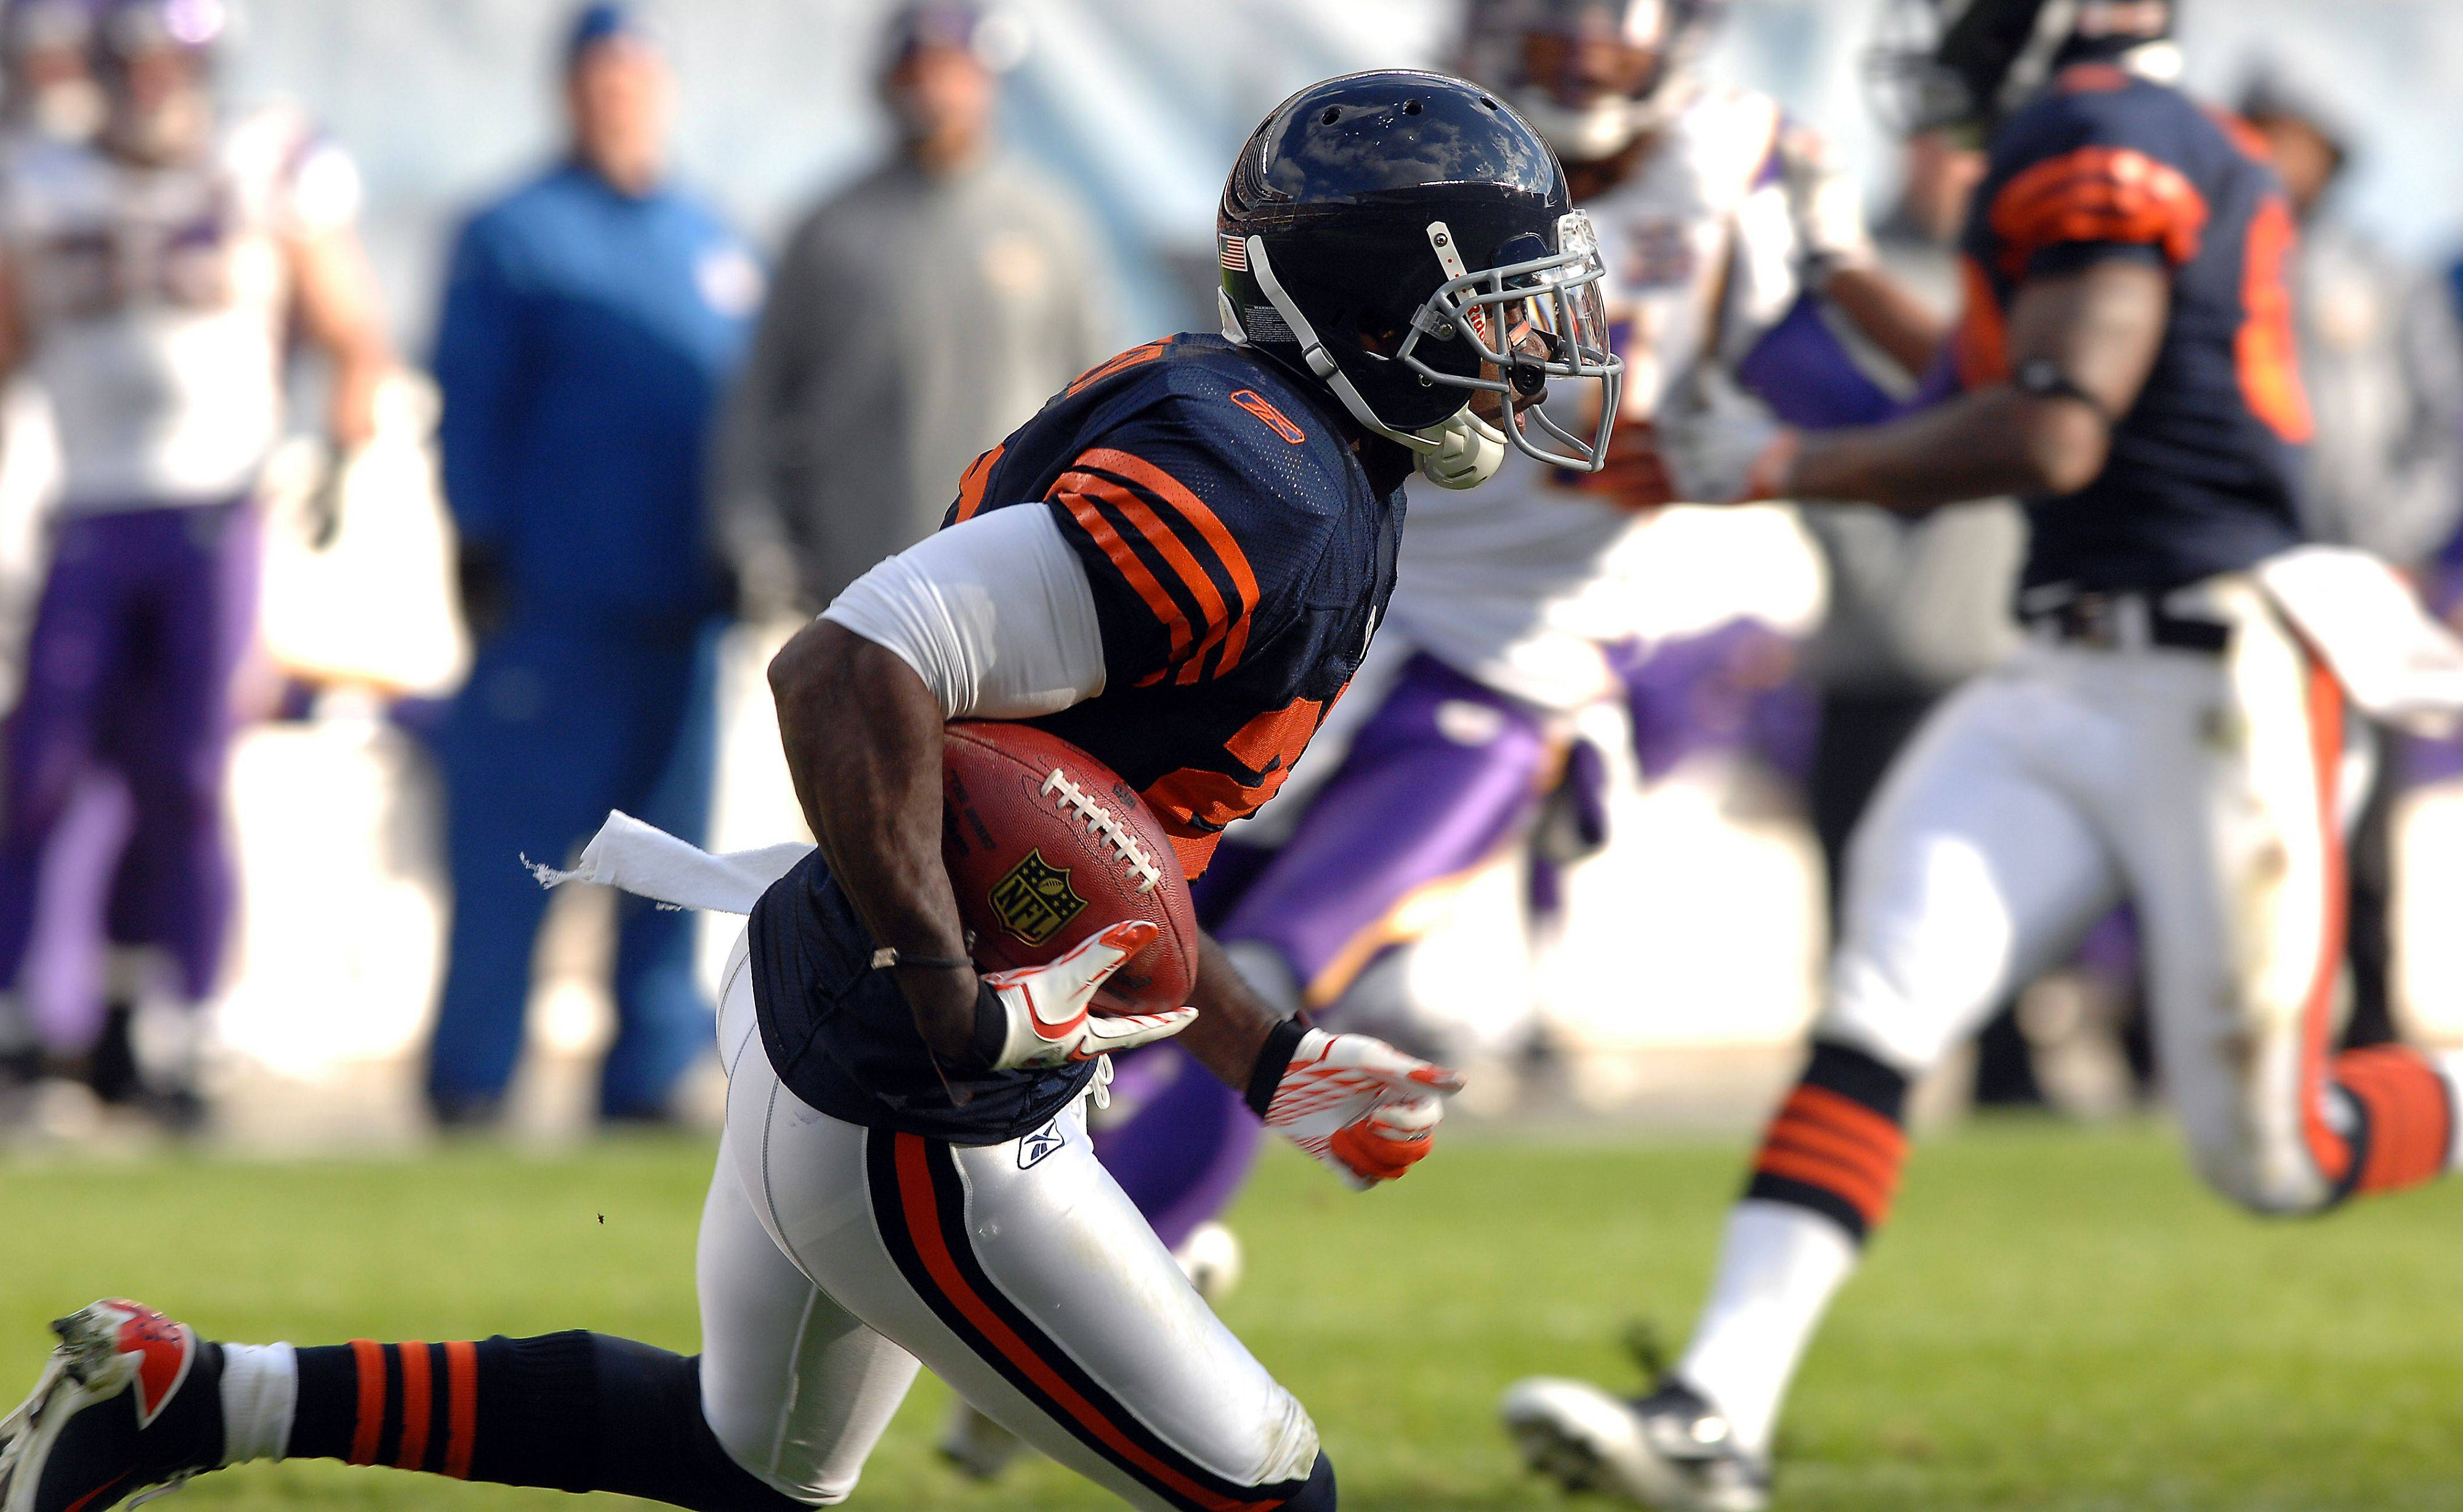 Devin Hester on the move on his second kickoff return for major yardage in the 4th quarter.